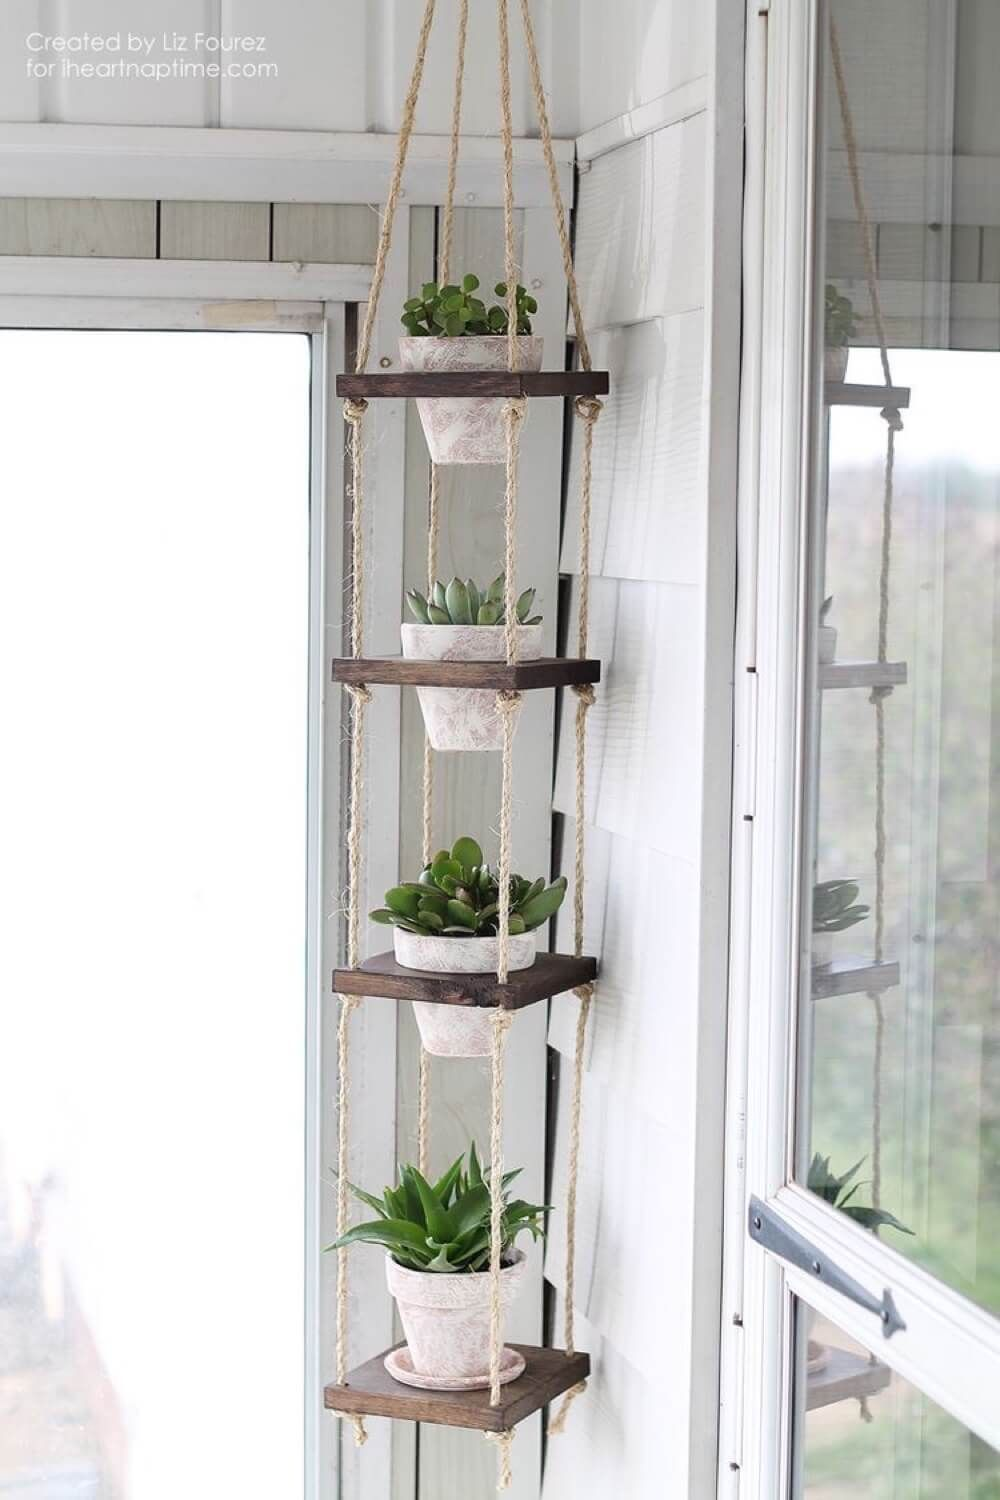 34 Reclaimed Wood Diy Projects You Can Make At Home Diy Plant